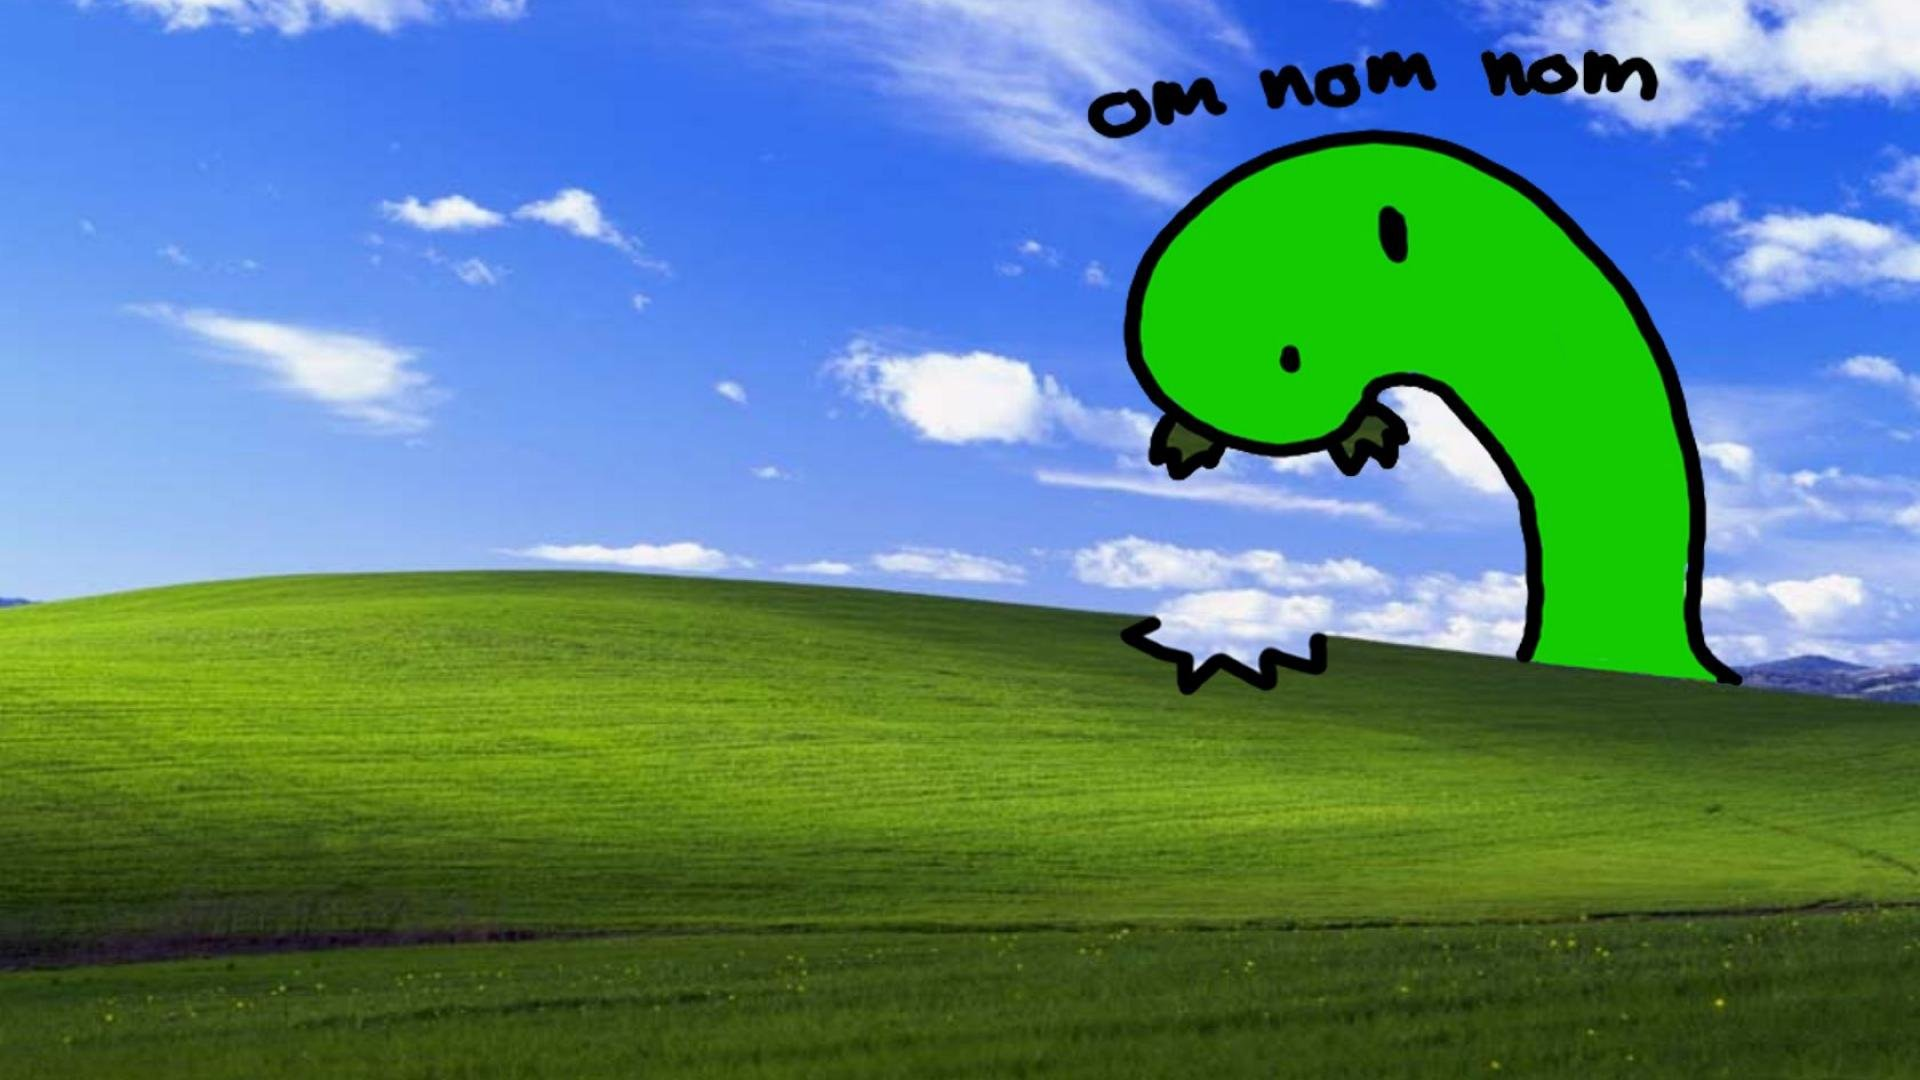 Windows Xp Wallpaper 1920x1080 Posted By Samantha Simpson